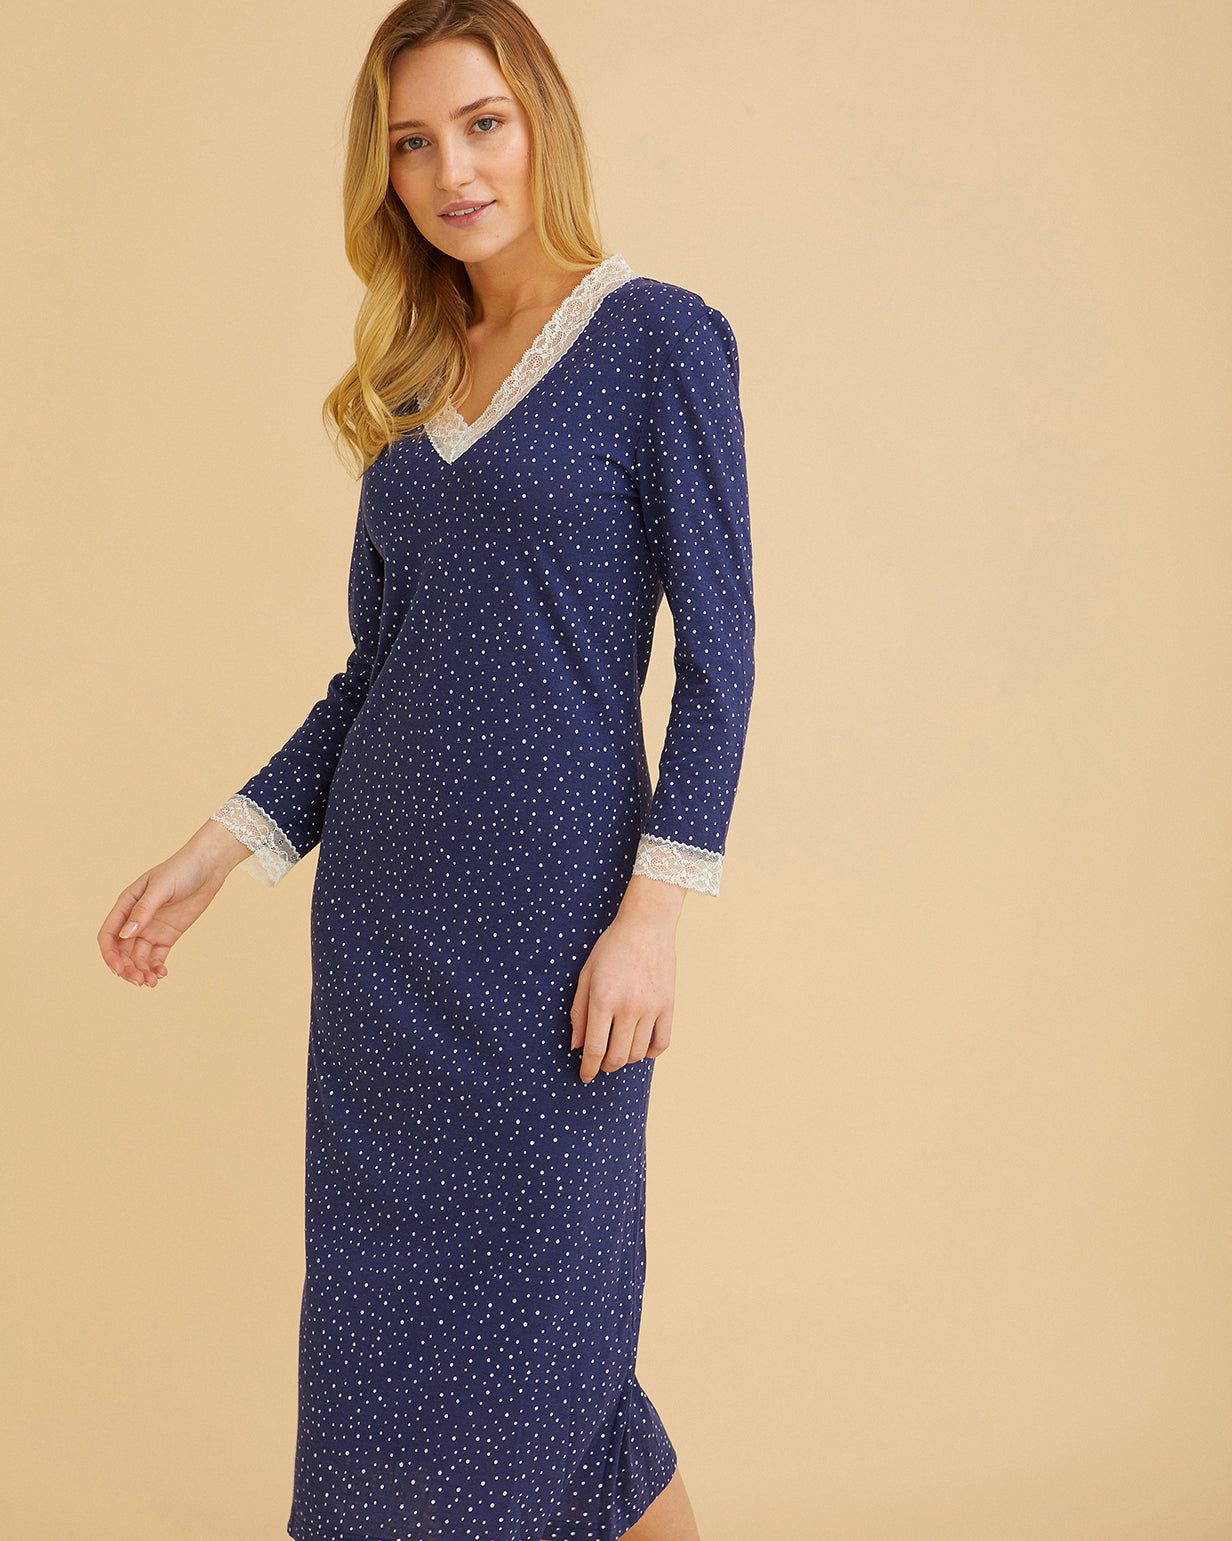 Women's Ella Polka Dot Nightdress | Bonsoir of London